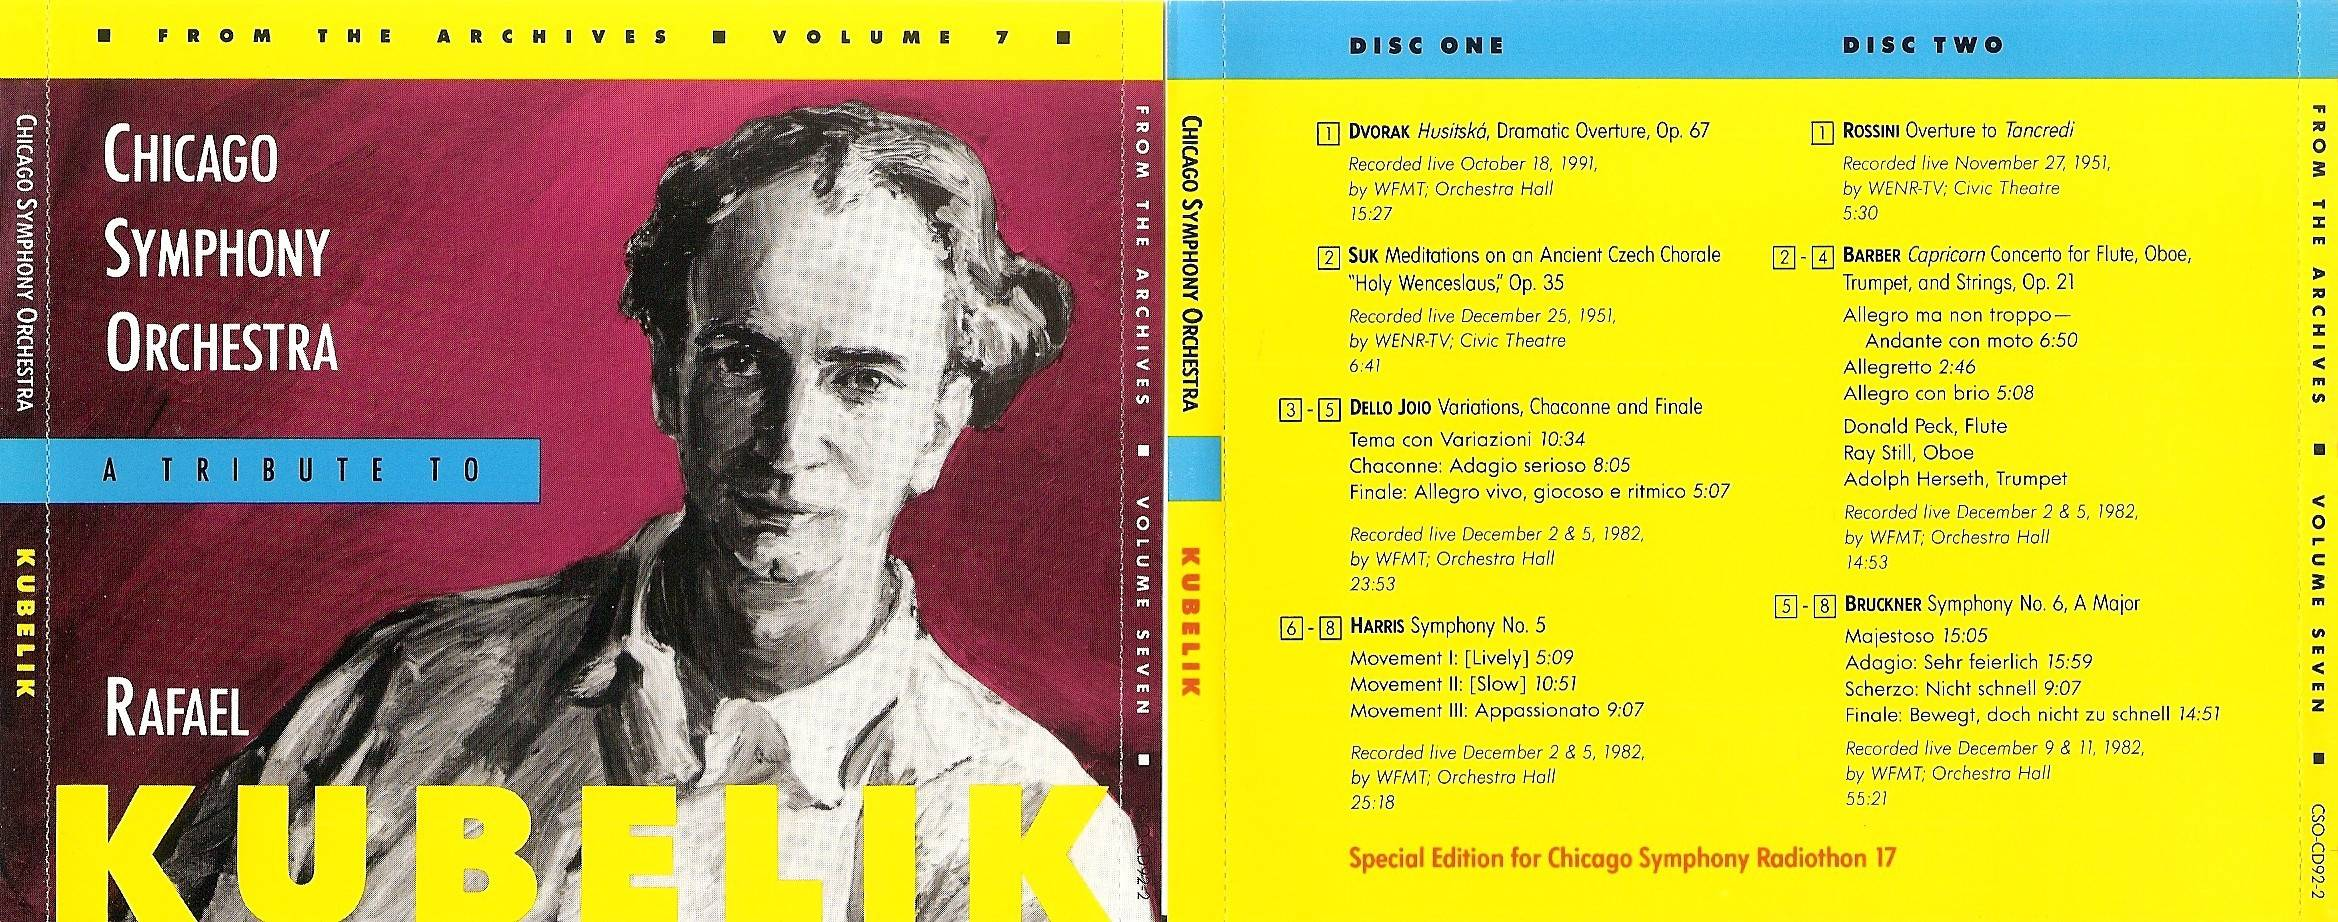 Chicago Symphony Orchestra - From The Archives, Vol.7: A Tribute to Rafael Kubelik, 2-CD set (1992)